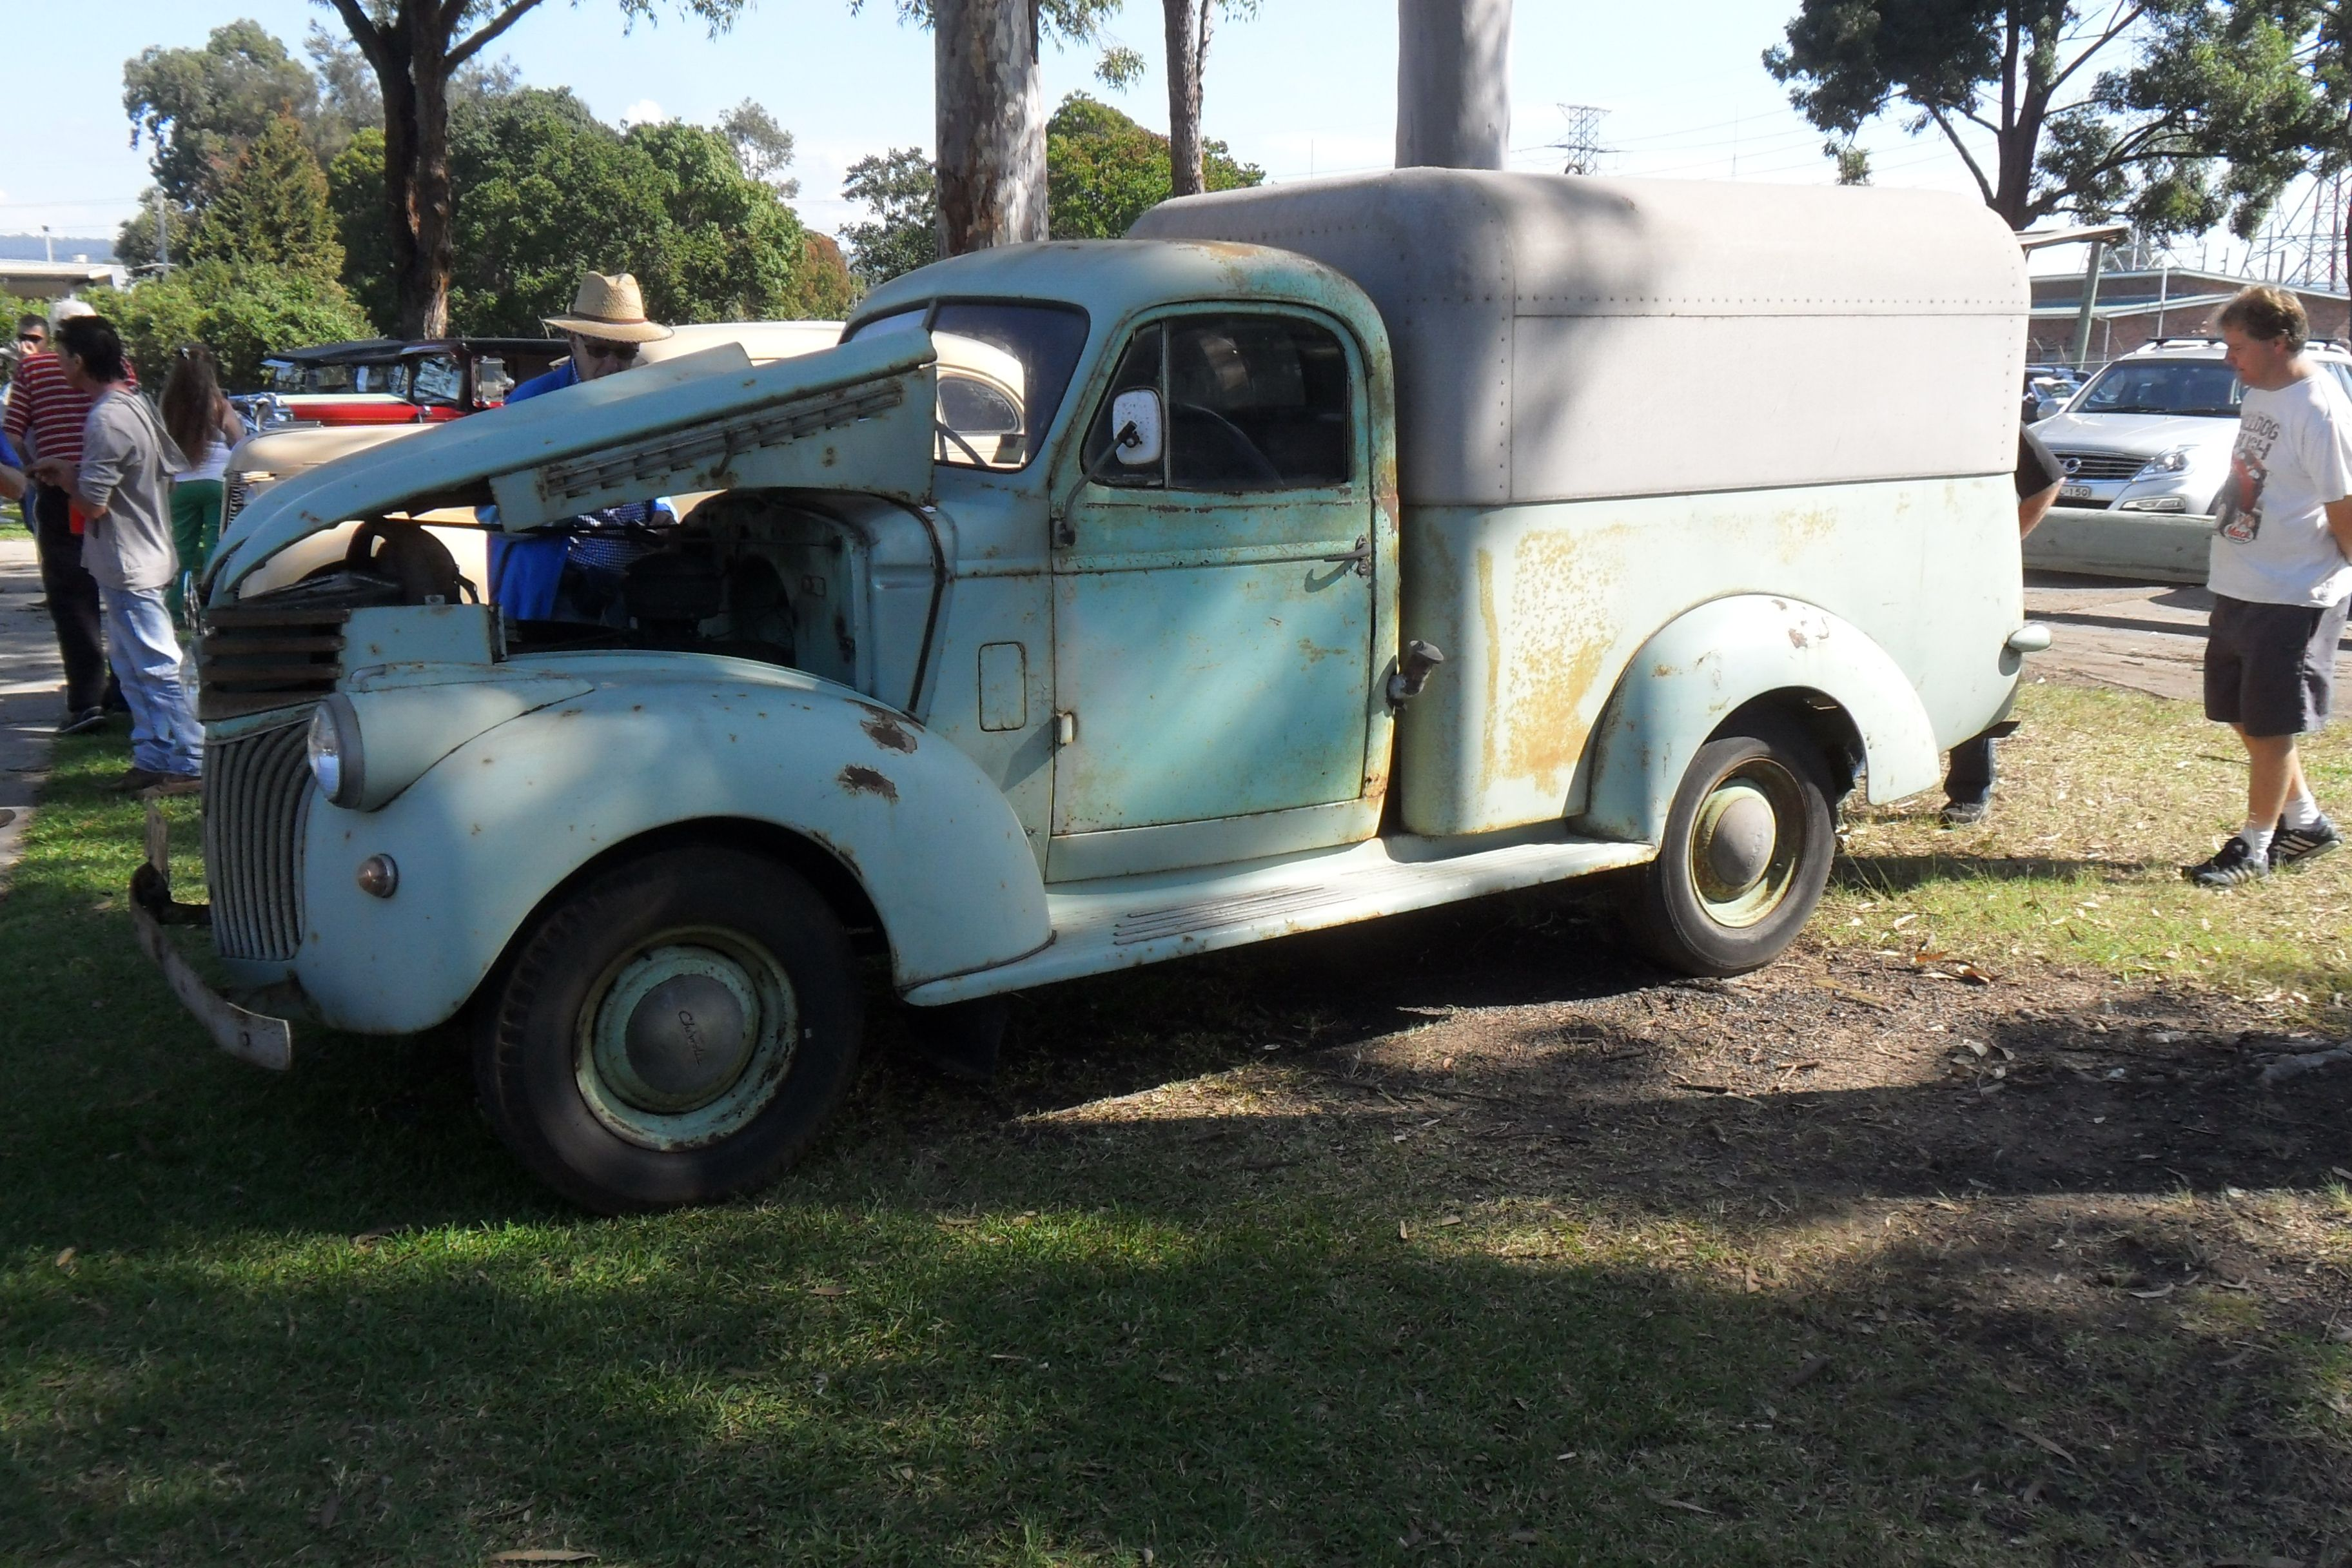 1941 Chevrolet Holdens Body 1 2ton Truck Fitted With An Australian Pickup Box Canopy Chevy Trucks Chevy Holden